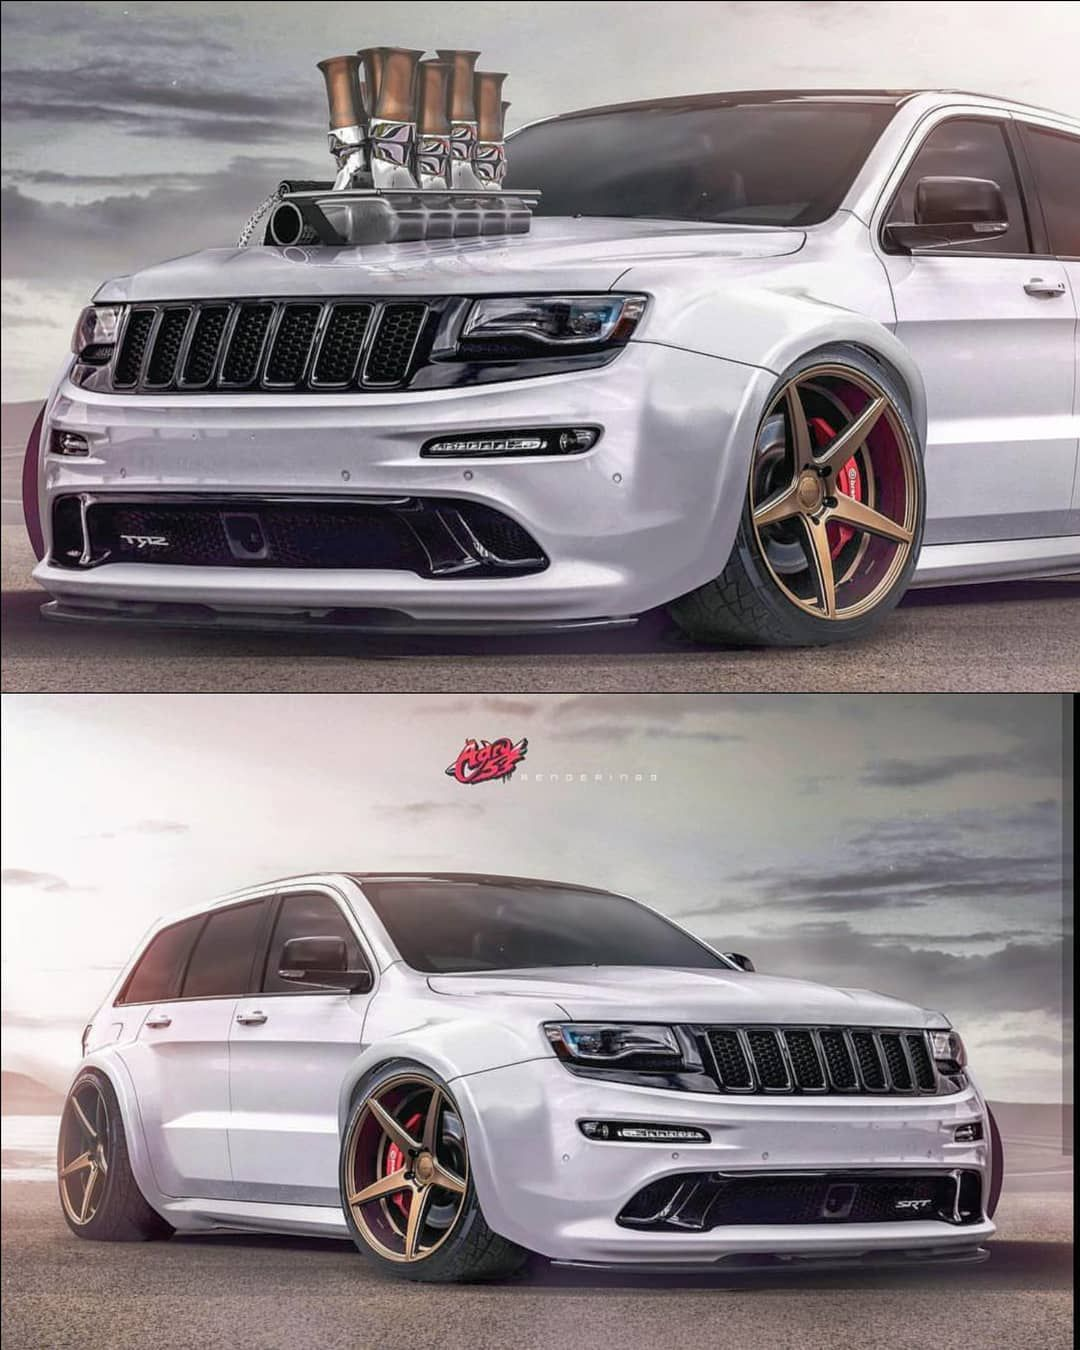 Sick Check Out Adry 53 With This Widebody Jeep Render